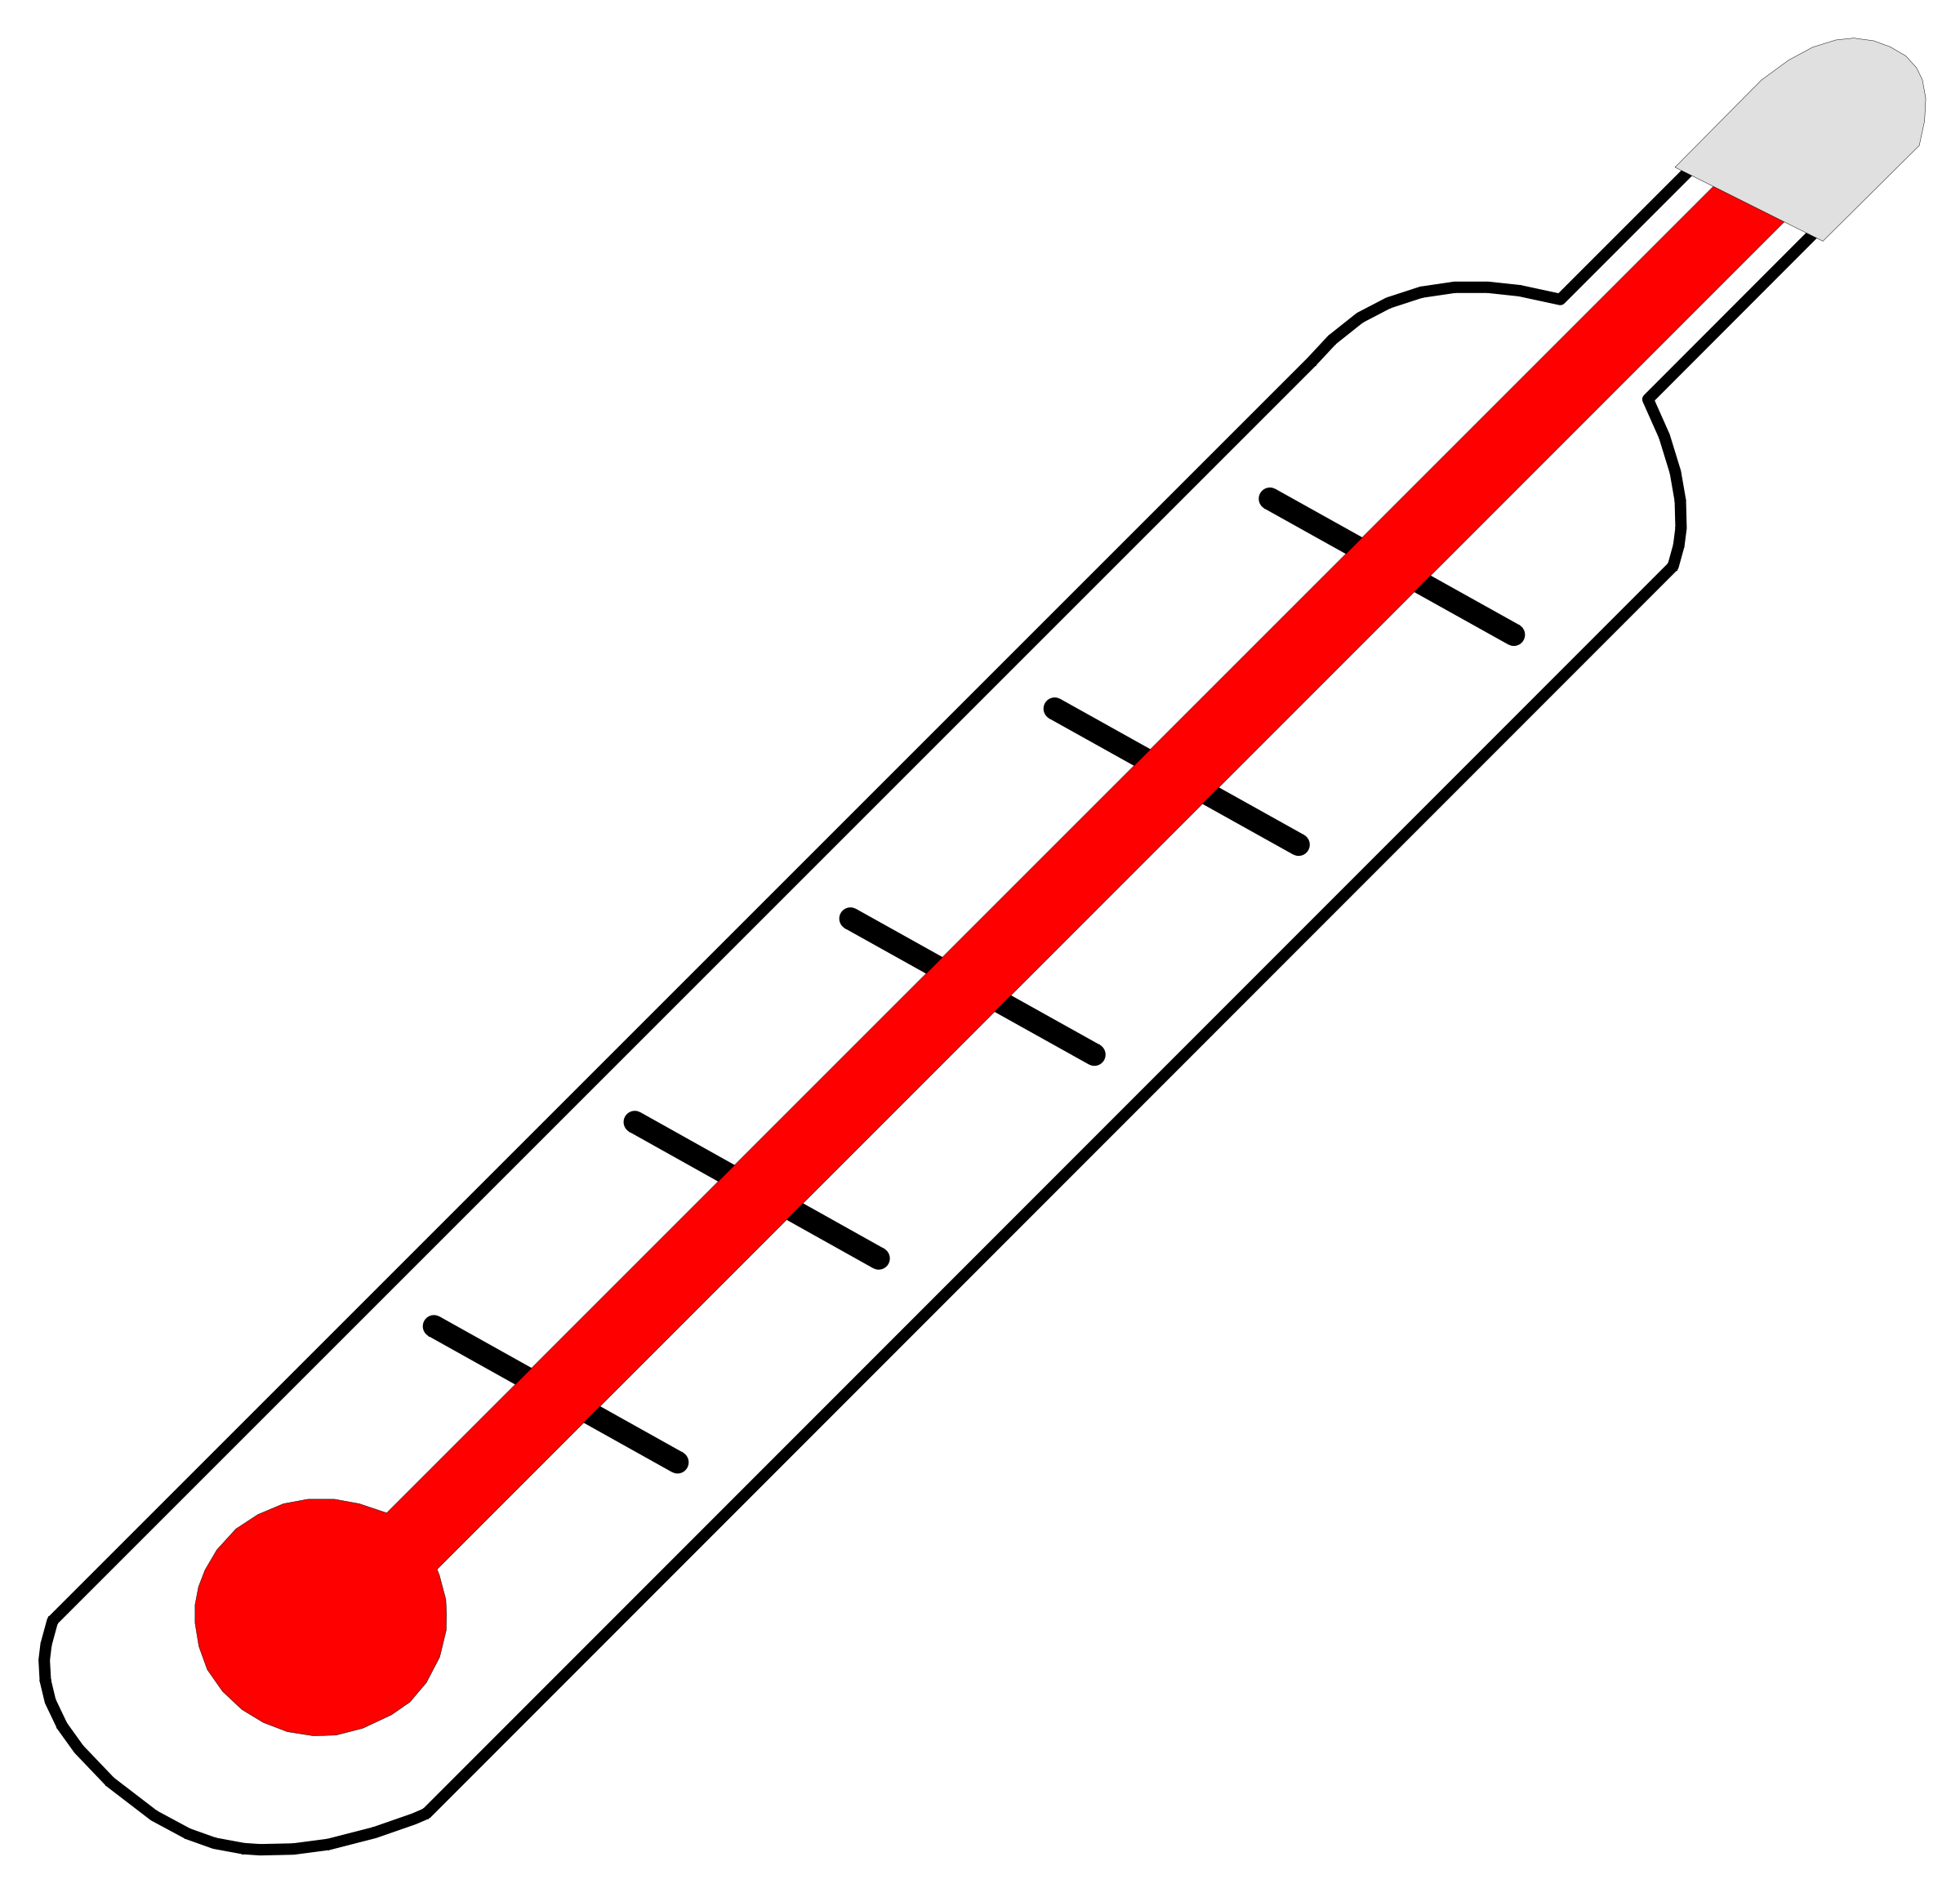 Fever clipart. Hot thermometer clip arts